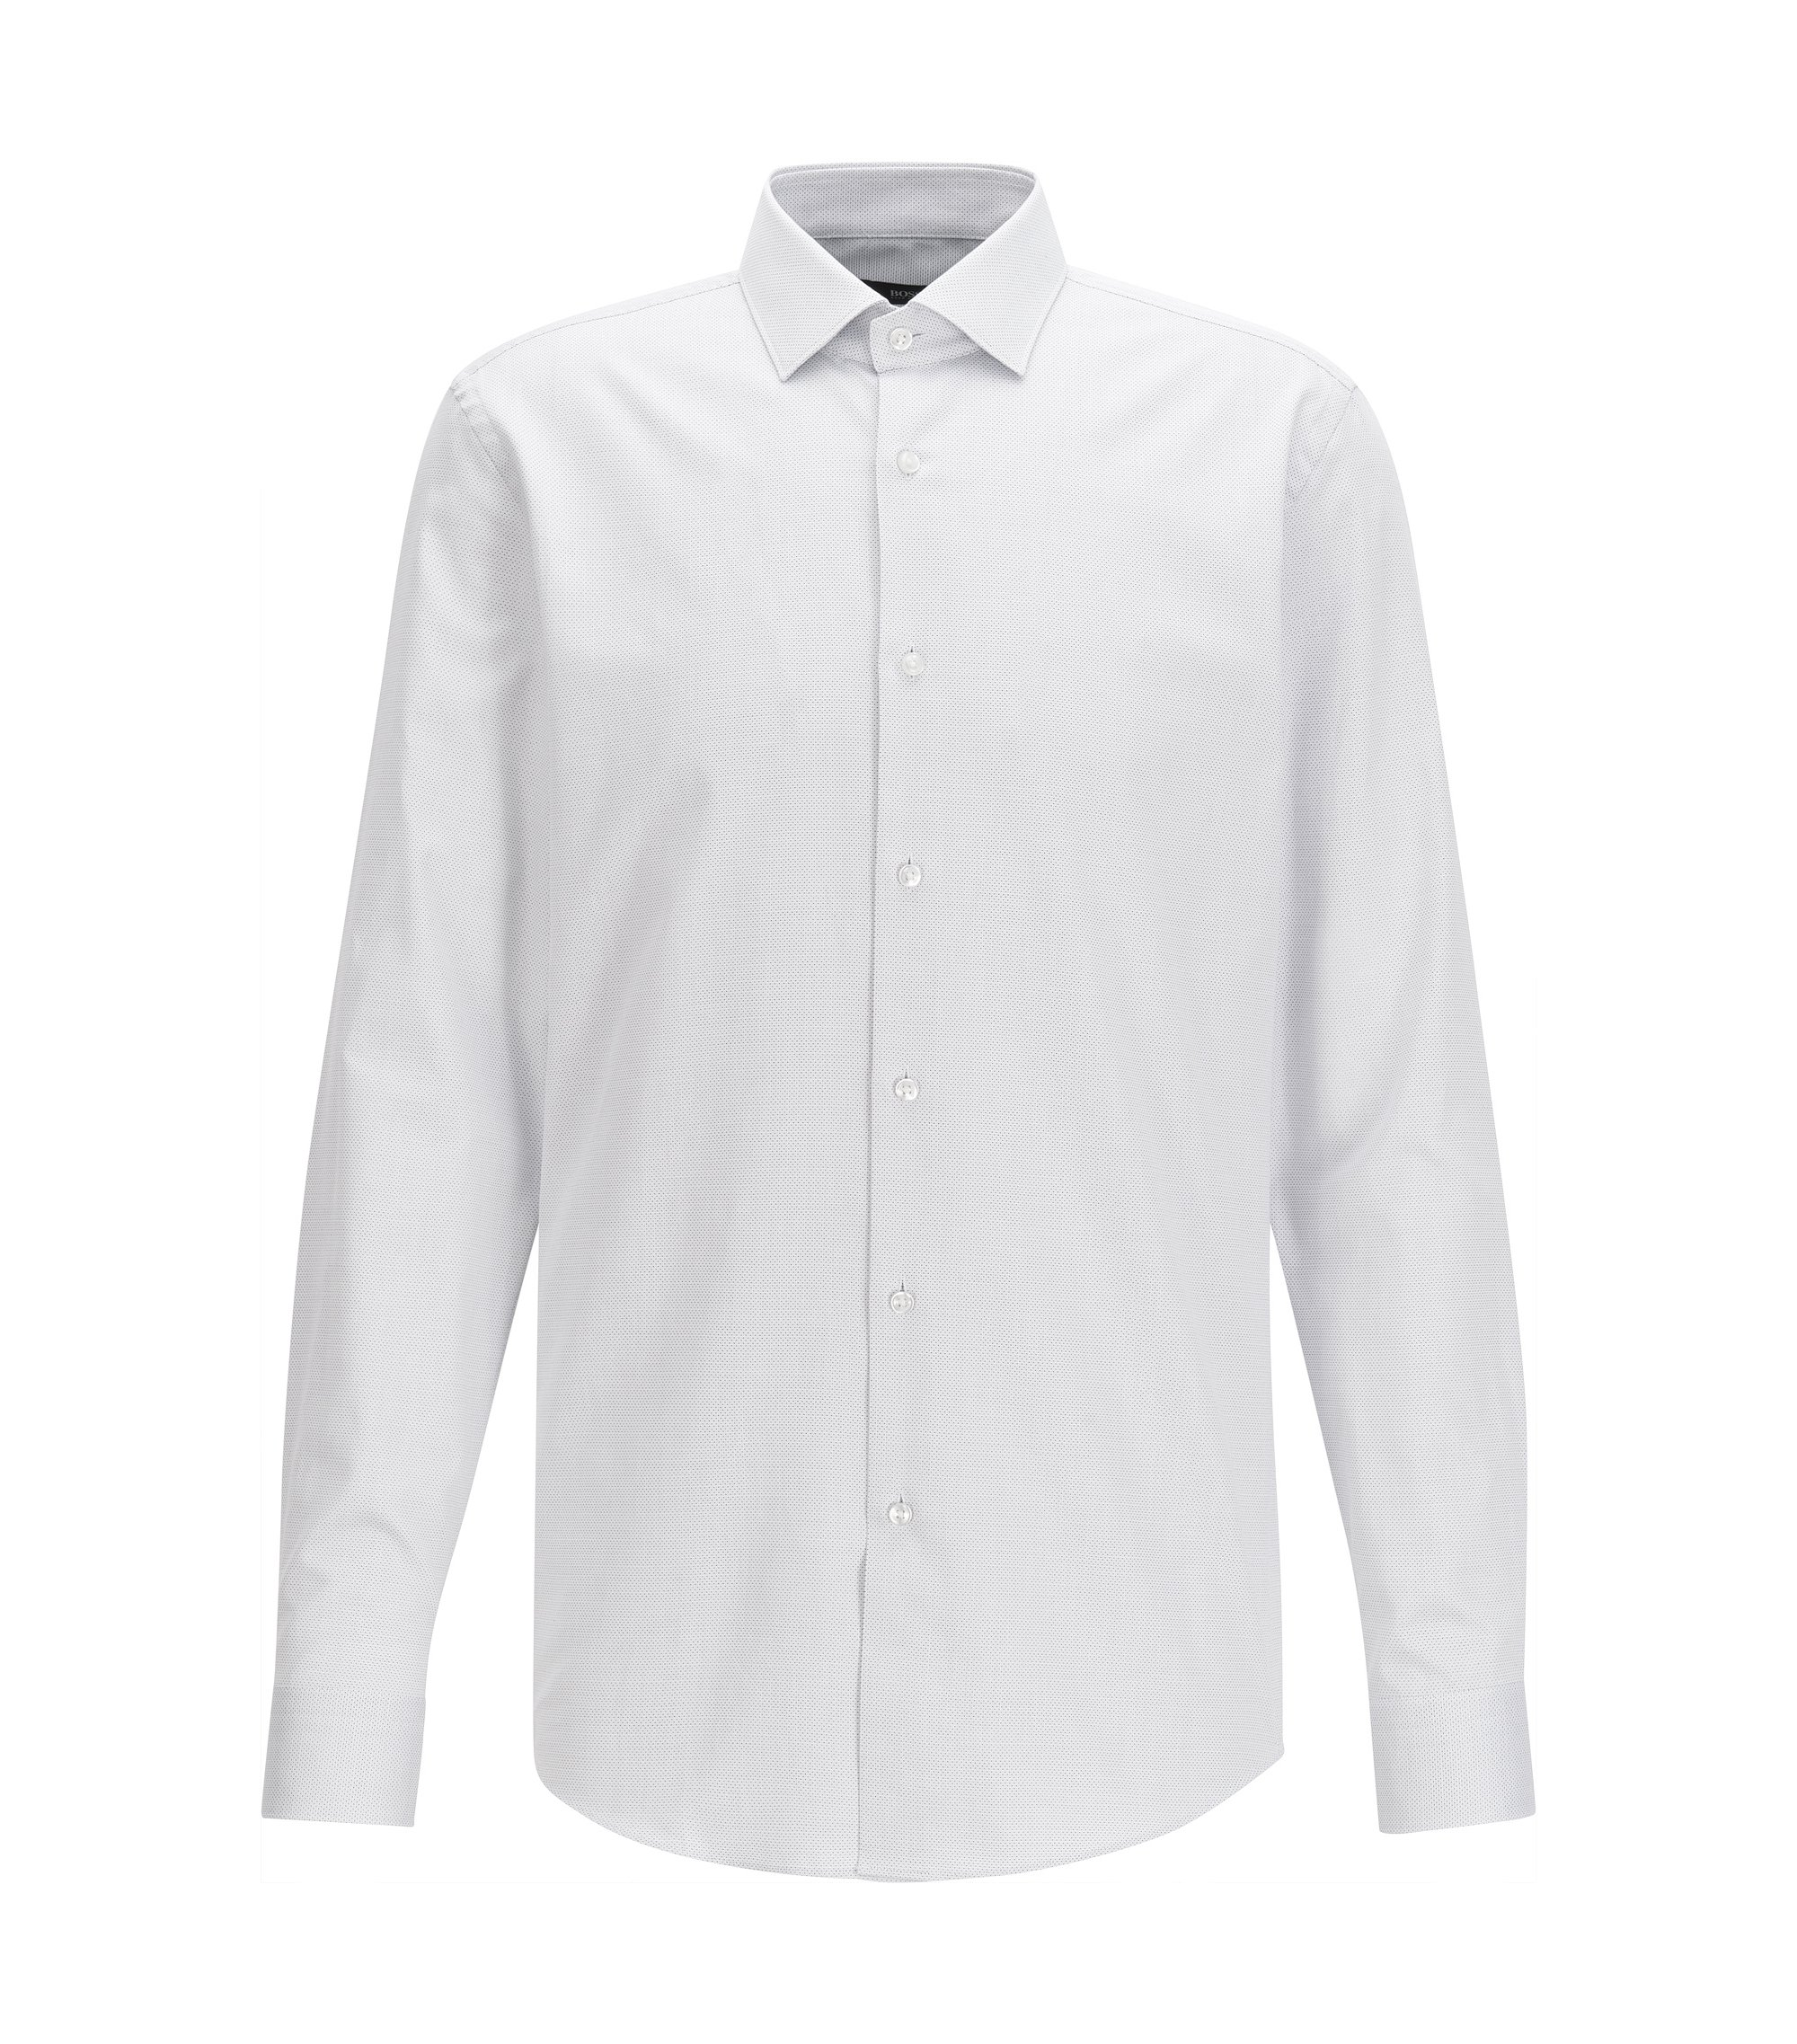 Slim-fit dot-patterned shirt in yarn-dyed cotton twill, White